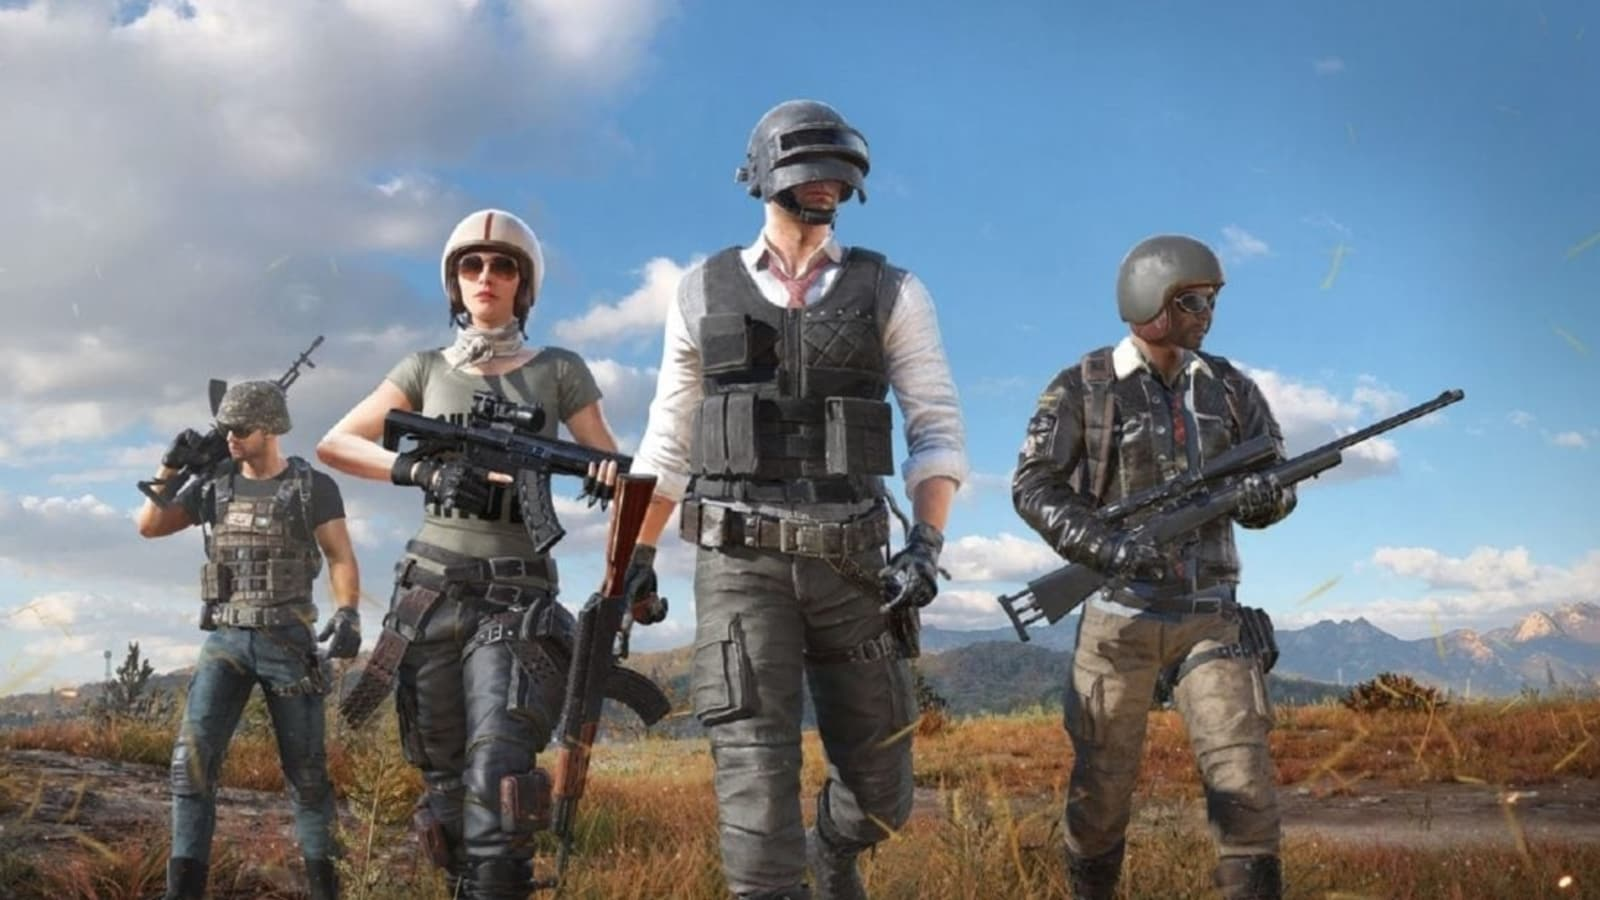 Battlegrounds Mobile India: Major changes coming to BGMI, check rankings and more